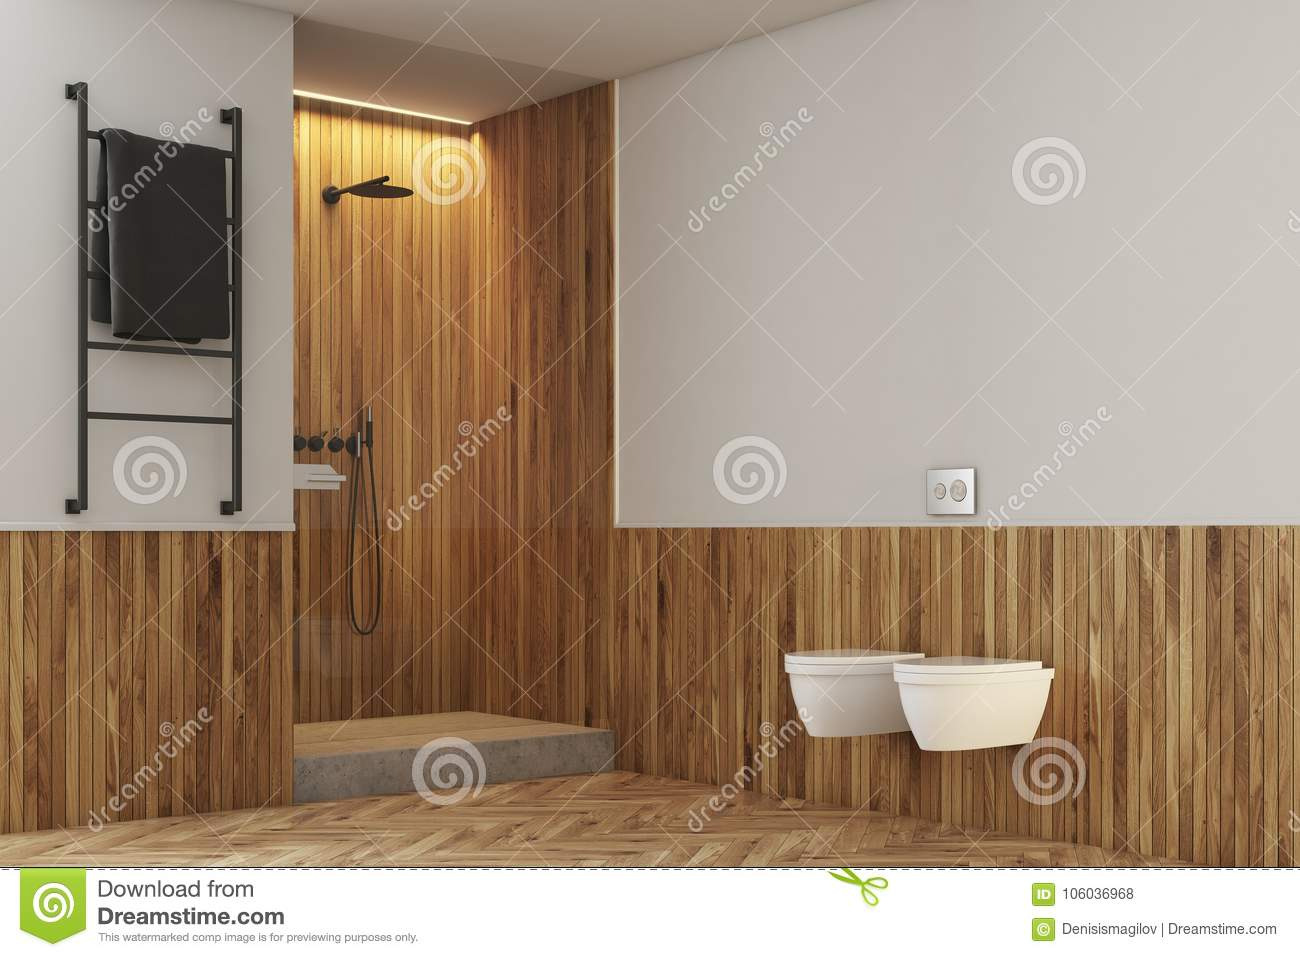 White And Wooden Bathroom, Toilets And Shower Stock Illustration ...